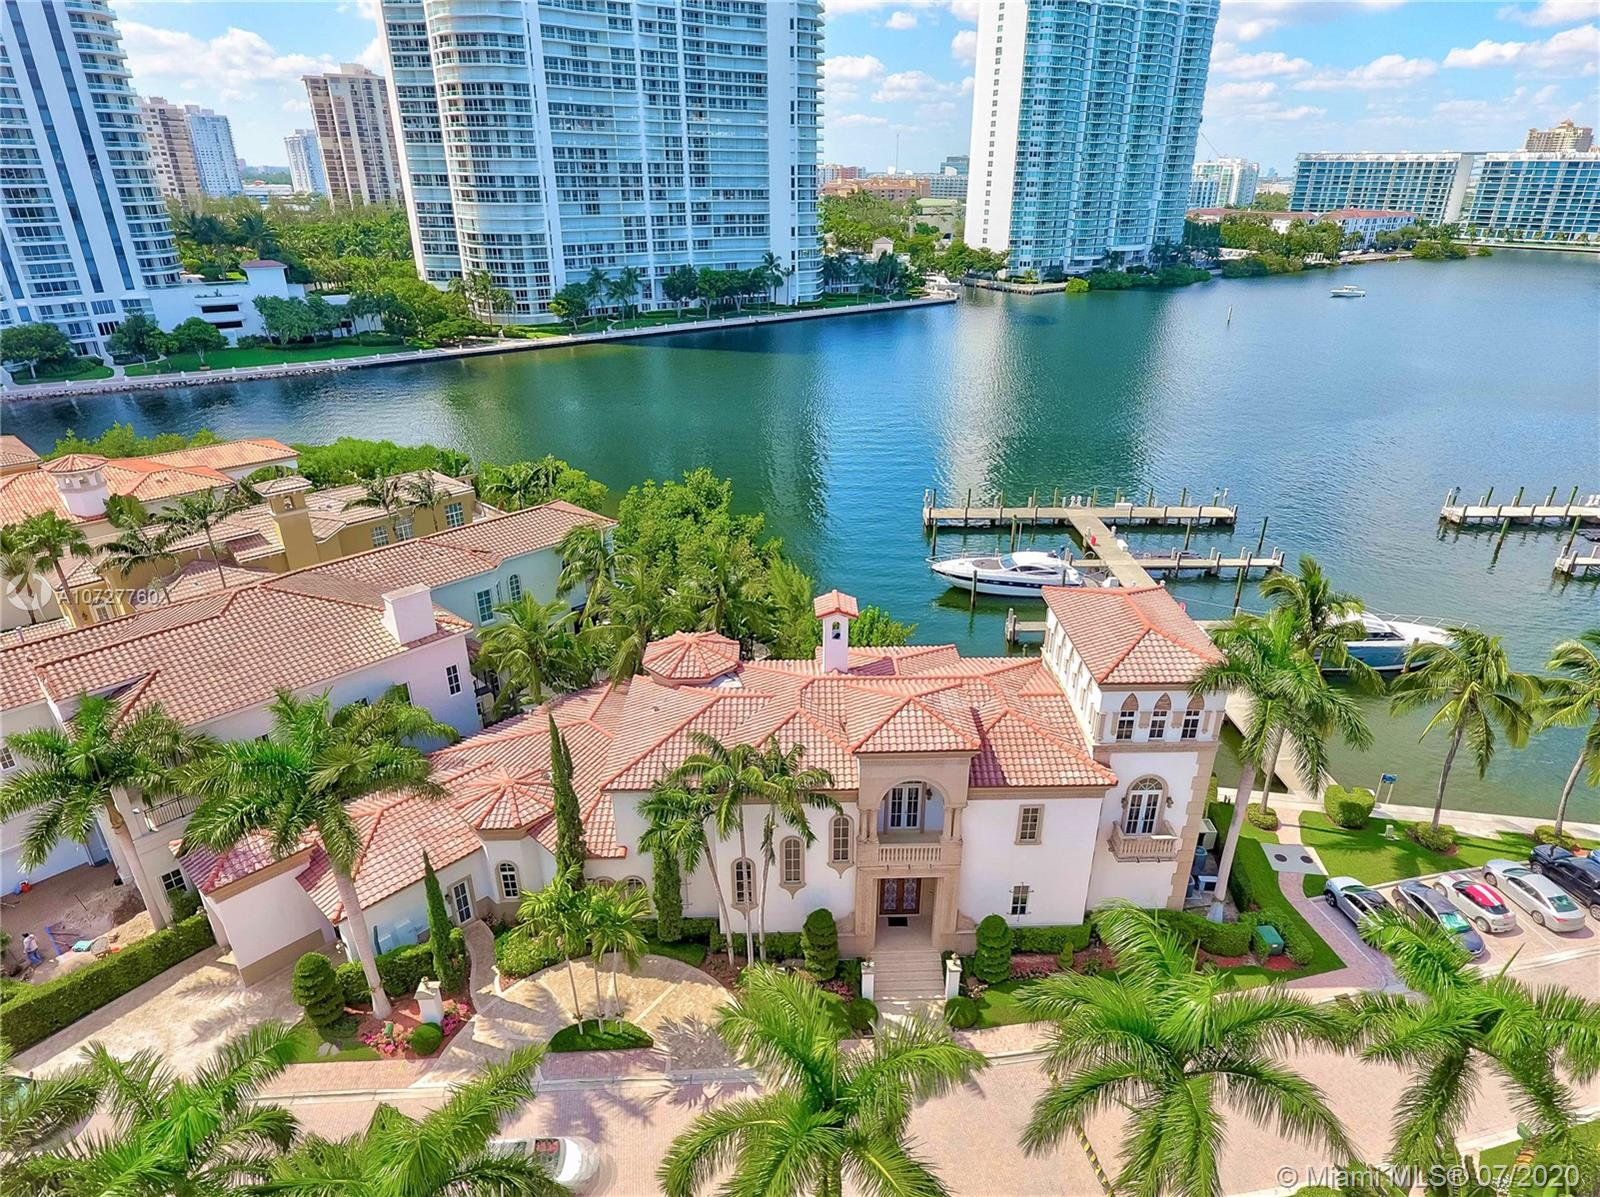 AVENTURA MOST EXCLUSIVE WATERFRONT VILLA IN THE PRESTIGIOUS, PRIVATE GATED COMMUNITY OF ISLAND ESTATES. CELEBRATED OPULENCE & TIMELESS LUXURY IN THIS MEDITERRANEAN MANSION WITH 6 BR/8.5 BA, OVER 7,300SQFT  WATER VIEWS, PRIVATE MARINA. GREAT FOR ENTERTAINMENT OPEN FLOOR PLAN, HIGH CEILINGS,  ELEVATOR, DUAL HUGE MASTER BEDROOMS, WINE ROOM, WET BAR, FIREPLACE, STEAM SHOWER, HEATED POOL/SPA, GOURMET & OUTDOOR KITCHEN, 2 STORY FOYER, OUTDOOR TERRACE, 50' BOAT SLIP INCLUDED DEEDED DOCK. A TRUE OASIS, LIVE ON YOUR OWN PRIVATE ISLAND . ENJOY THE AMENITIES OF PRIVE FIVE START RESORT, TENNIS COURTS, SPA, INDOOR LAP POOL, HAIR SALON, 3 RESTAURANTS, CIGAR LOUNGE, MARINA FOR YACHTS, KIDS PLAYGROUND, DOGGIES HILL PLAY AREA, WALKING/RUNNING TRAIL & MUCH MORE!!